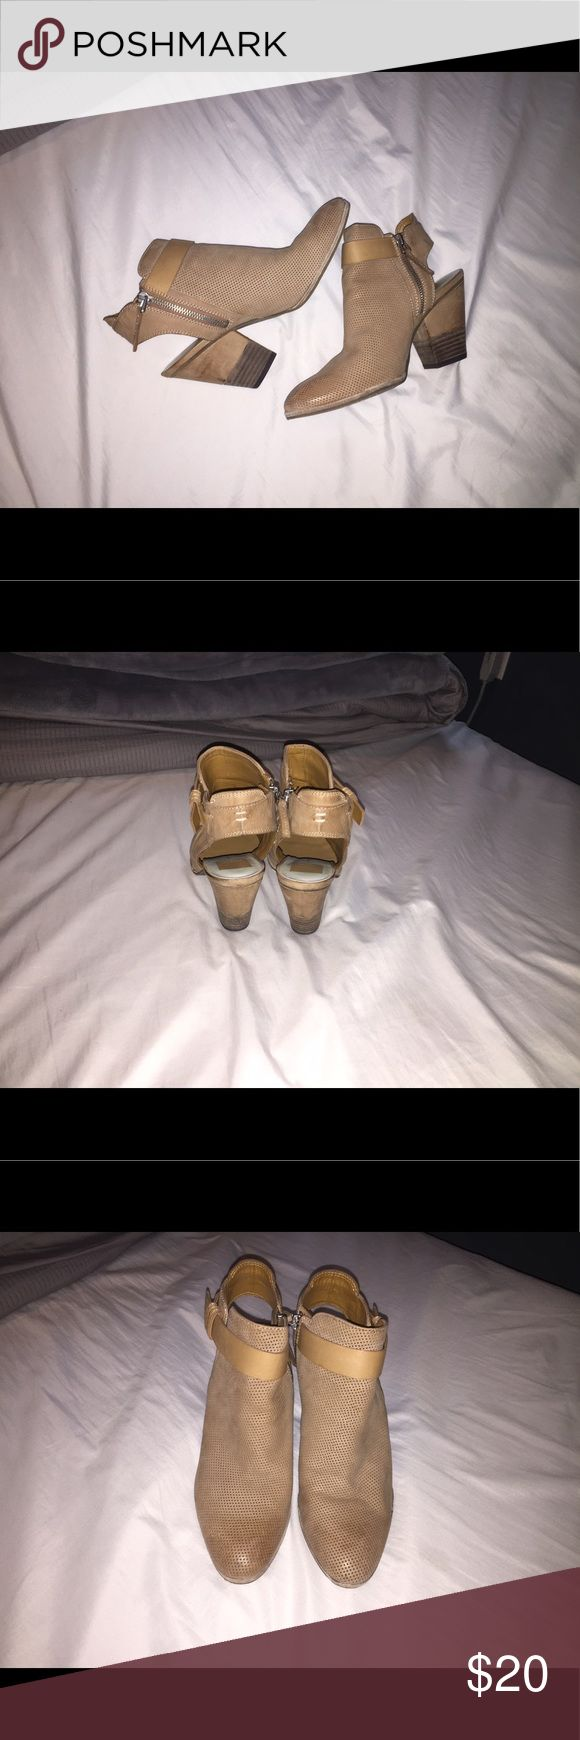 Cute Sandal Booties Cute, sand colored sandal booties. Super airy for summer comfort but still wearable in chilly weather Dolce Vita Shoes Wedges